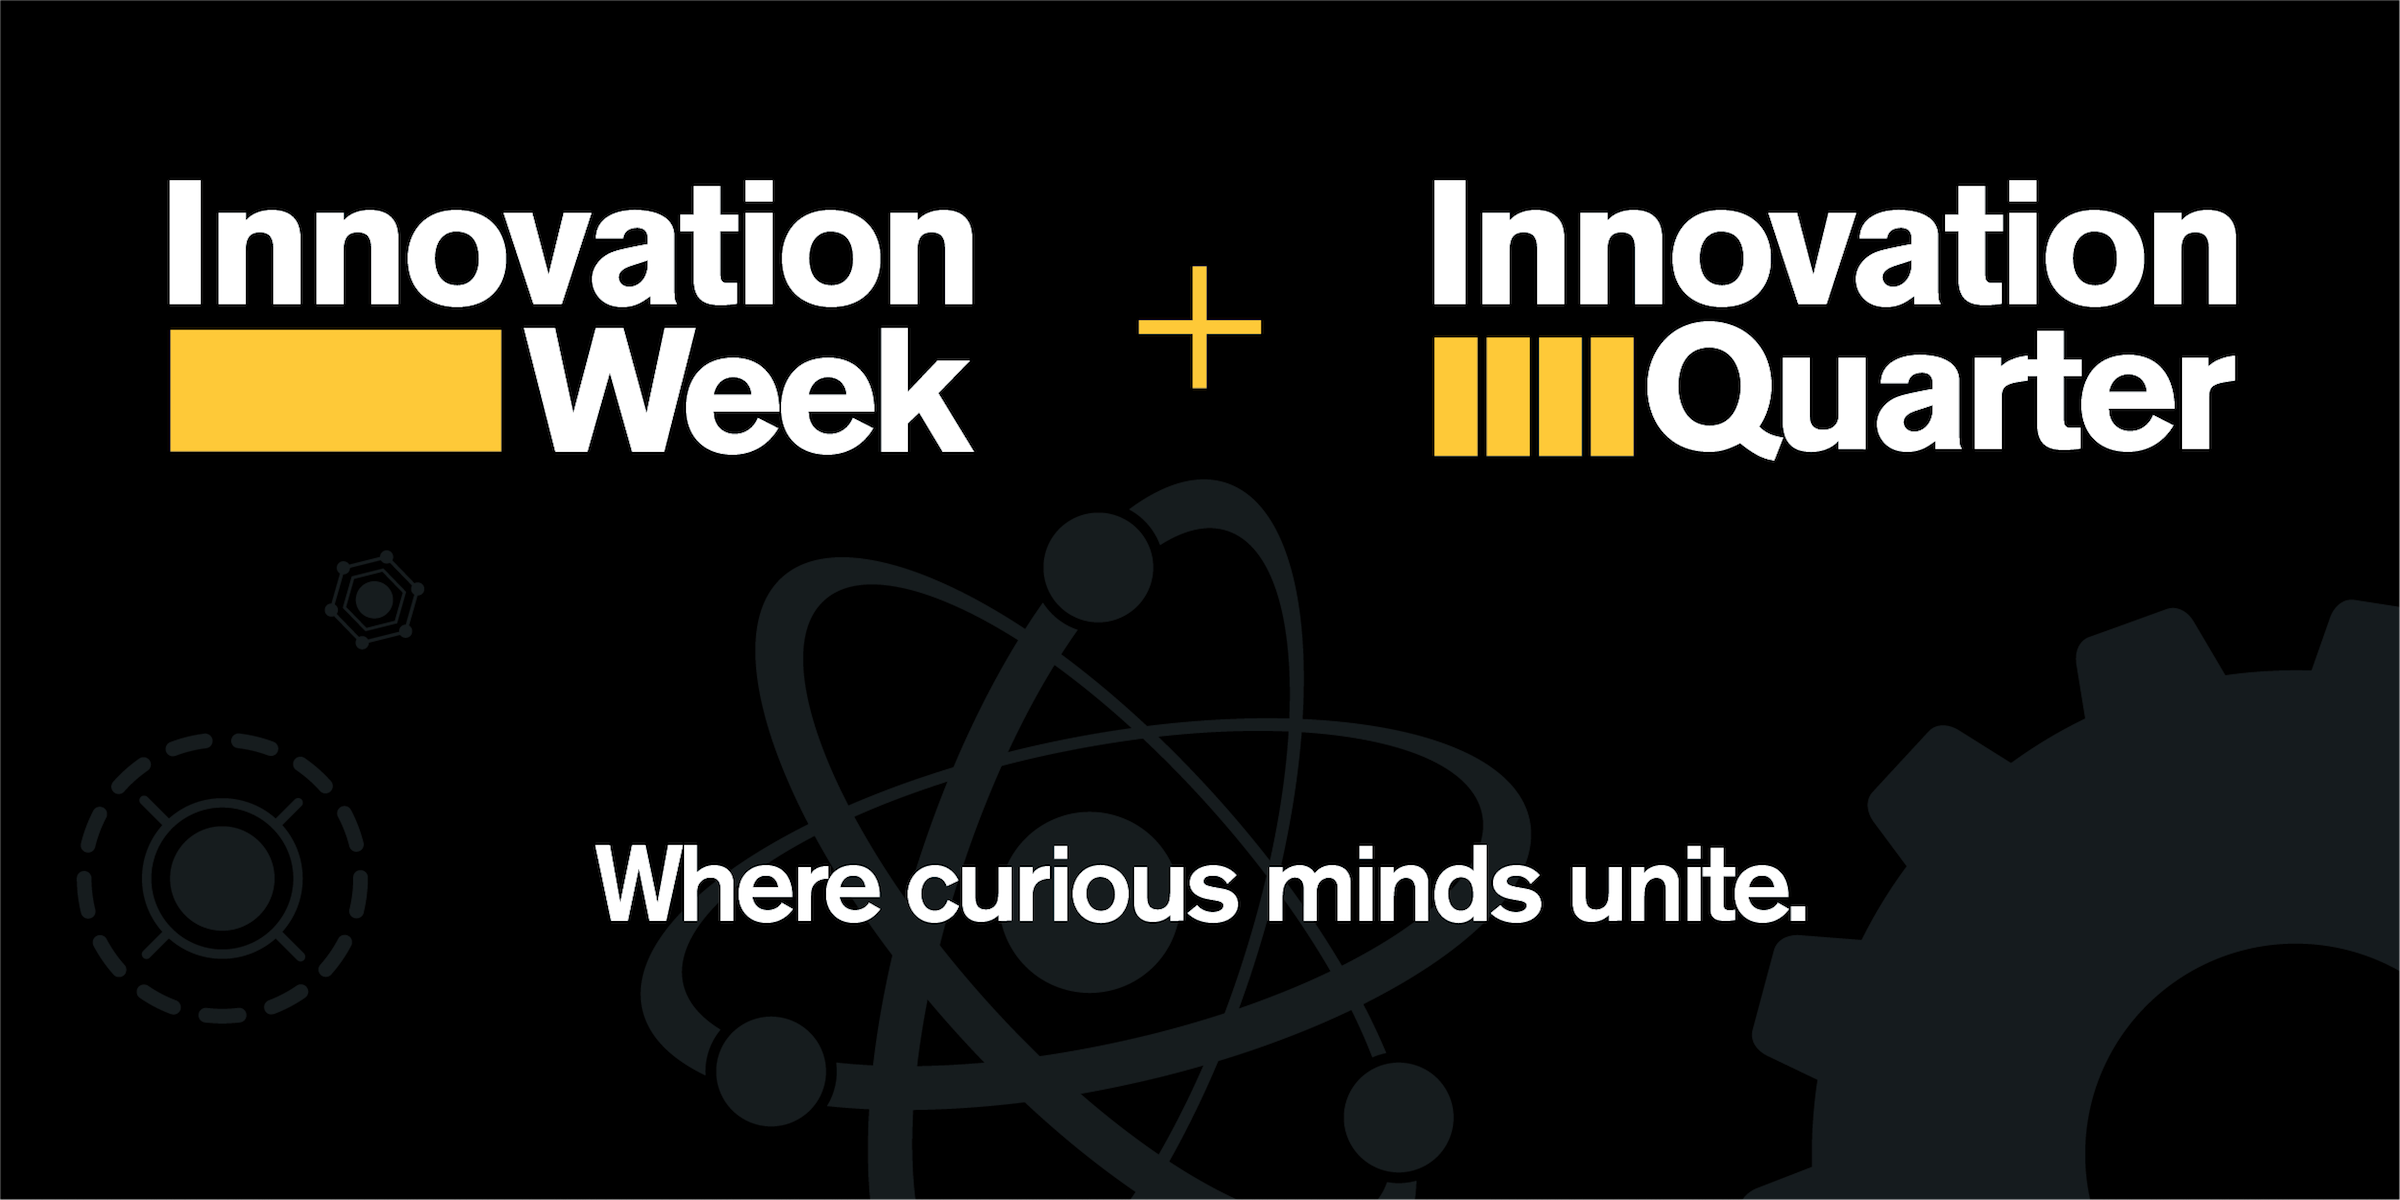 """graphic that says """"Innovation Week"""" and """"Innovation Quarter"""" with """"Where curious minds unite."""" below"""